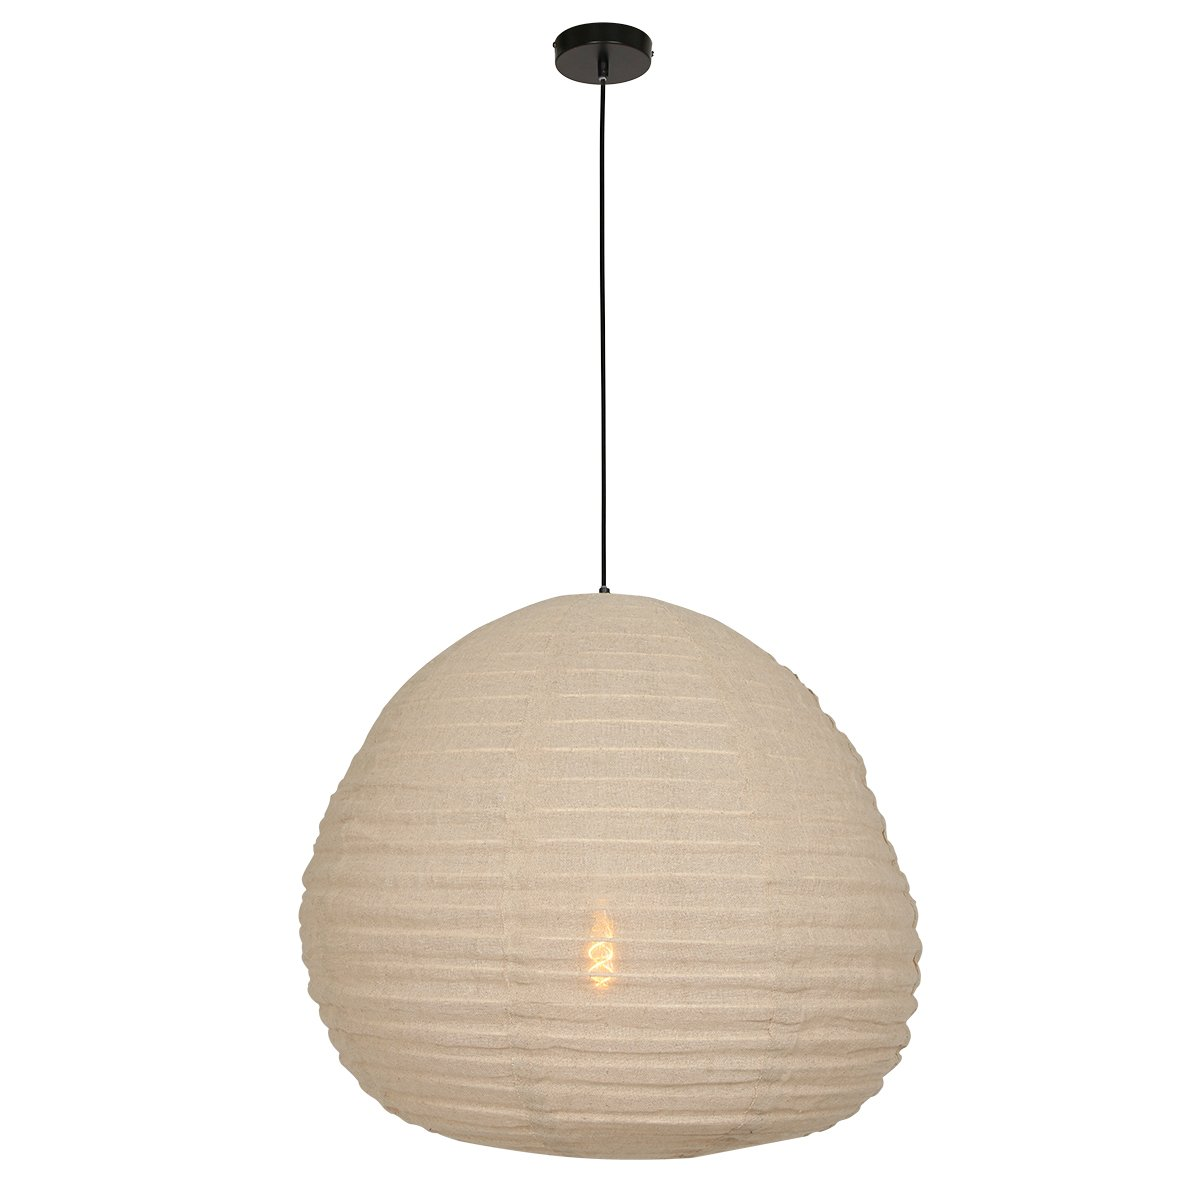 Hanglamp Stof Beige Anne Lighting Bangalore